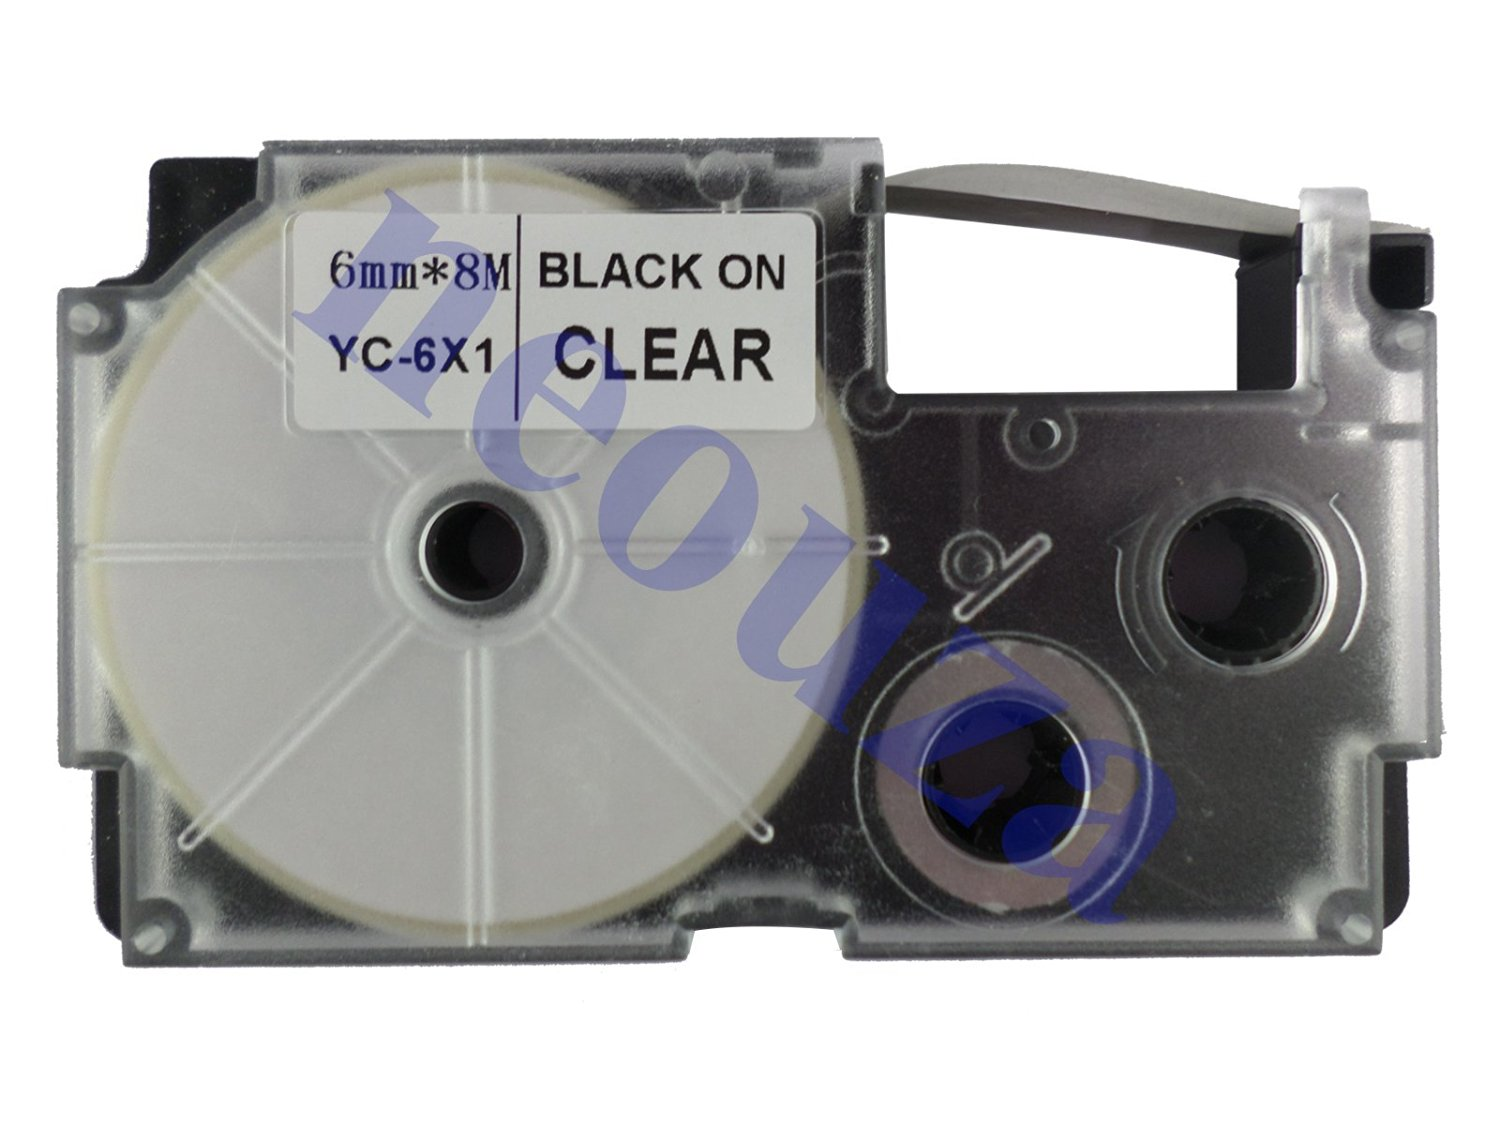 Compatible for Casio EZ-Label Tape 6mm Black on Clear XR-6X1 8m LABEL IT!